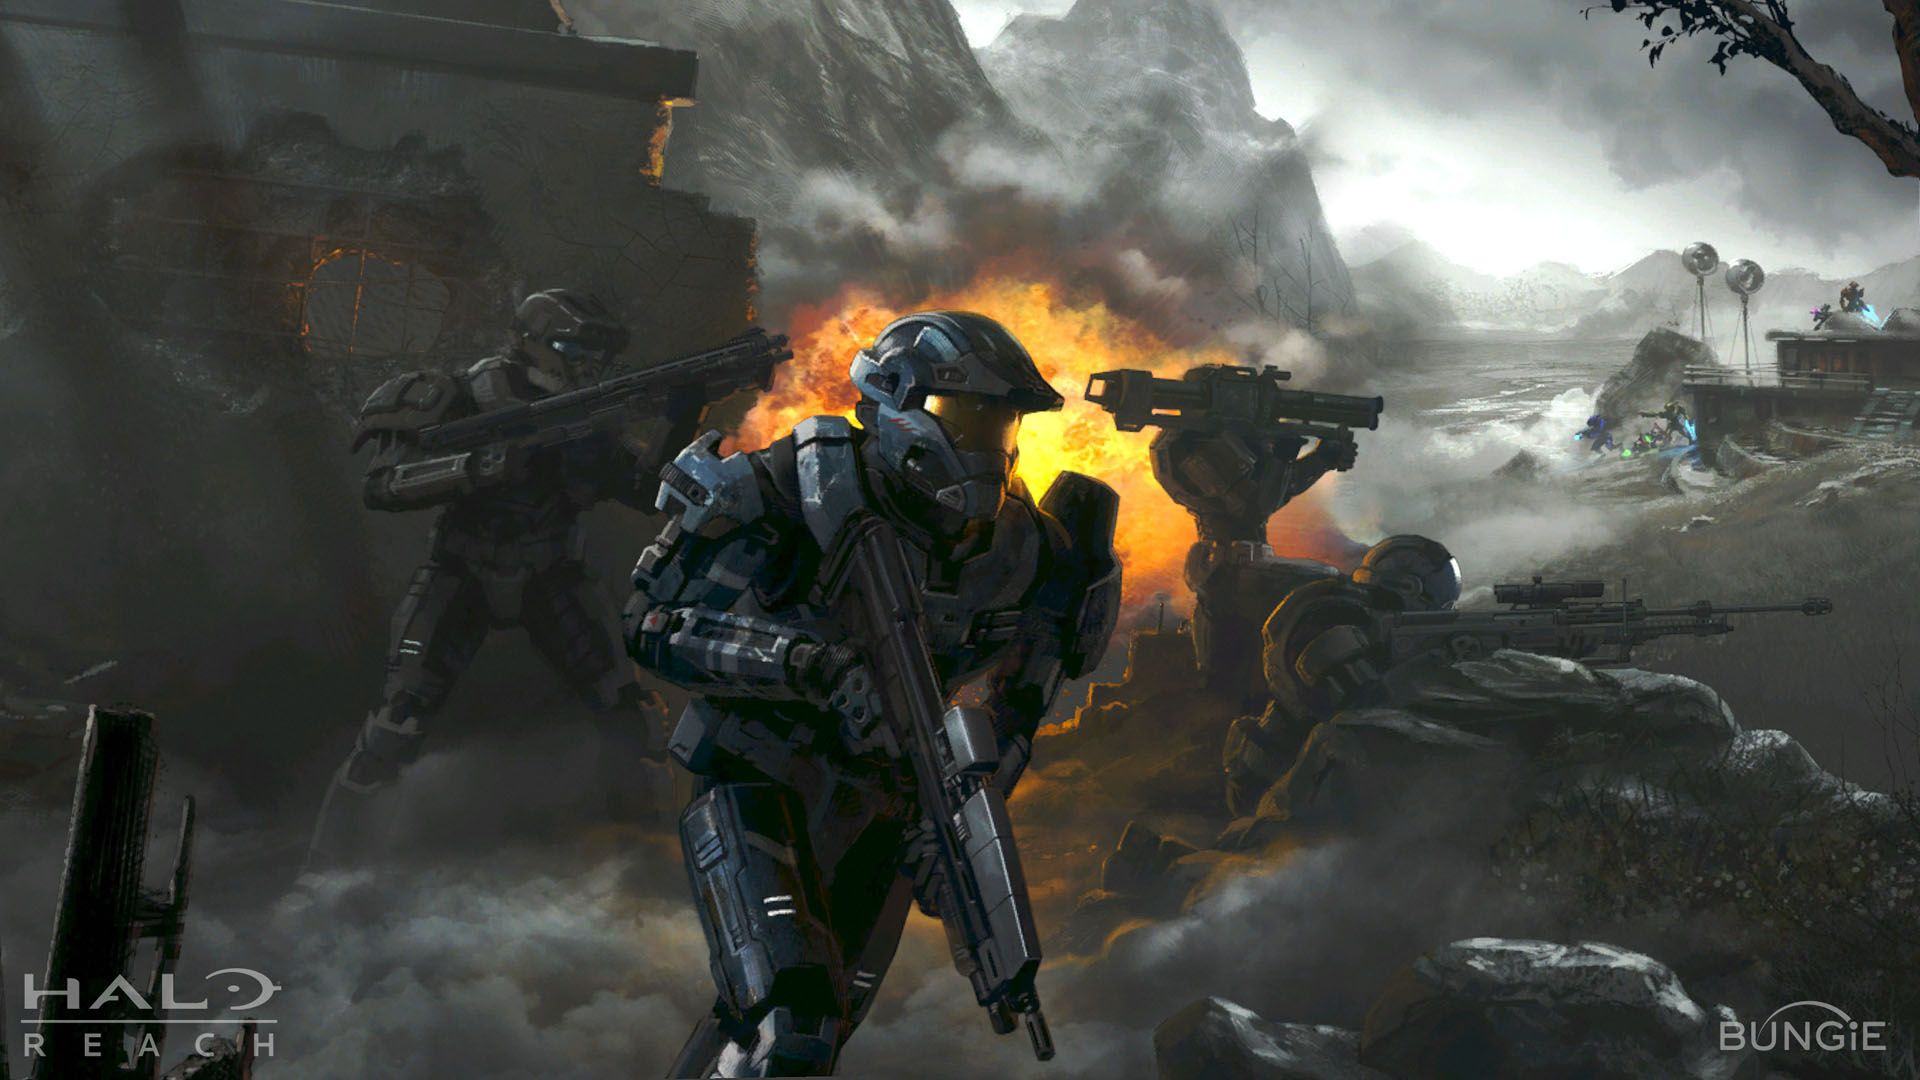 Halo reach firefight wallpaper art d3cnjiu 378703 - Master chief in halo reach ...